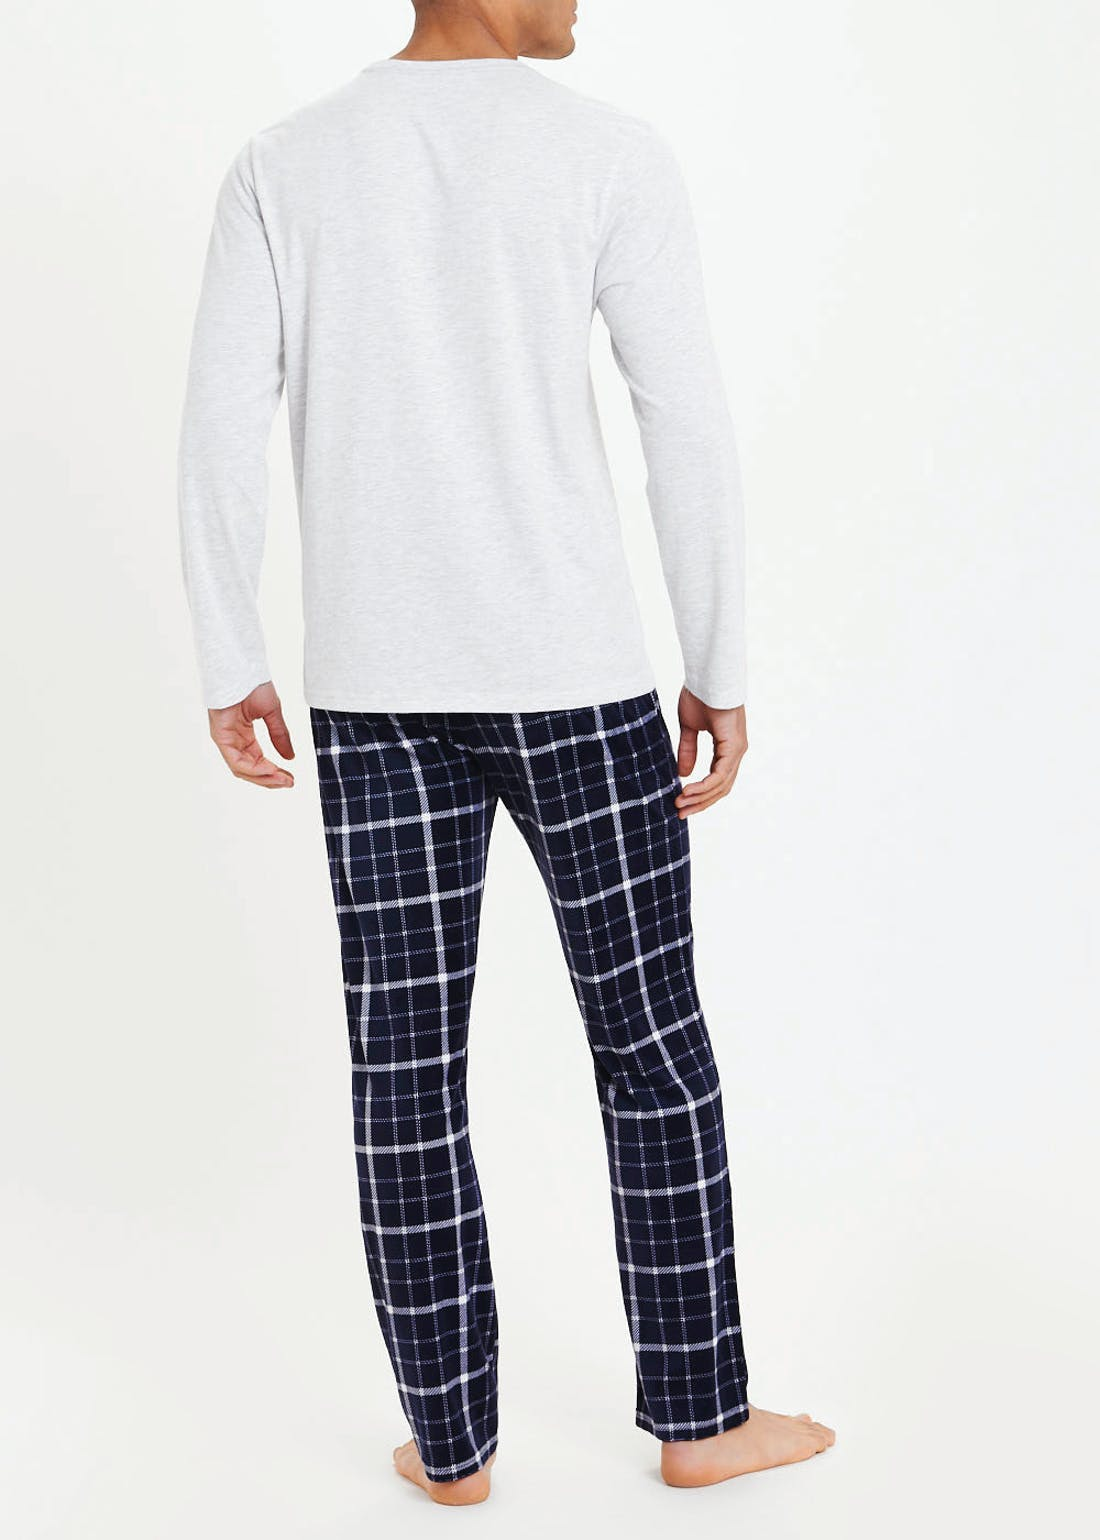 Check Fleece Long Sleeve Pyjama Set